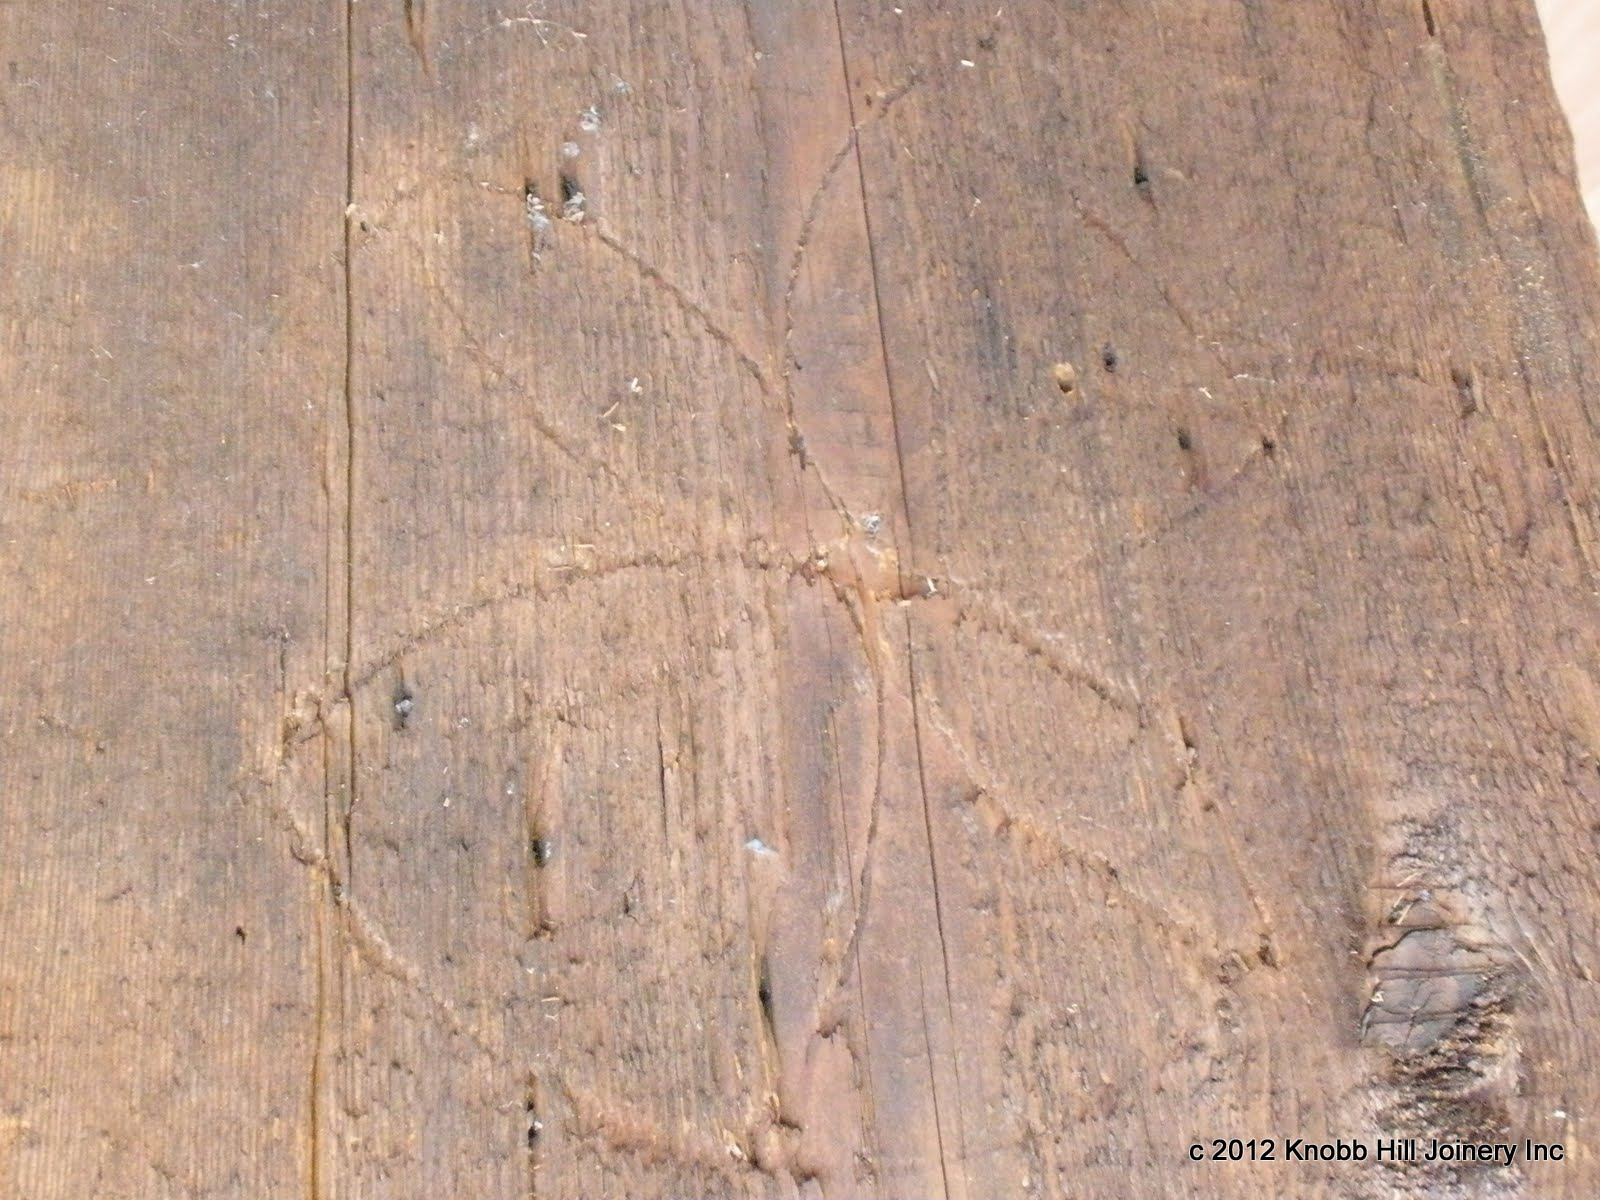 This 'daisy wheel' was discovered in the roof sheathing.